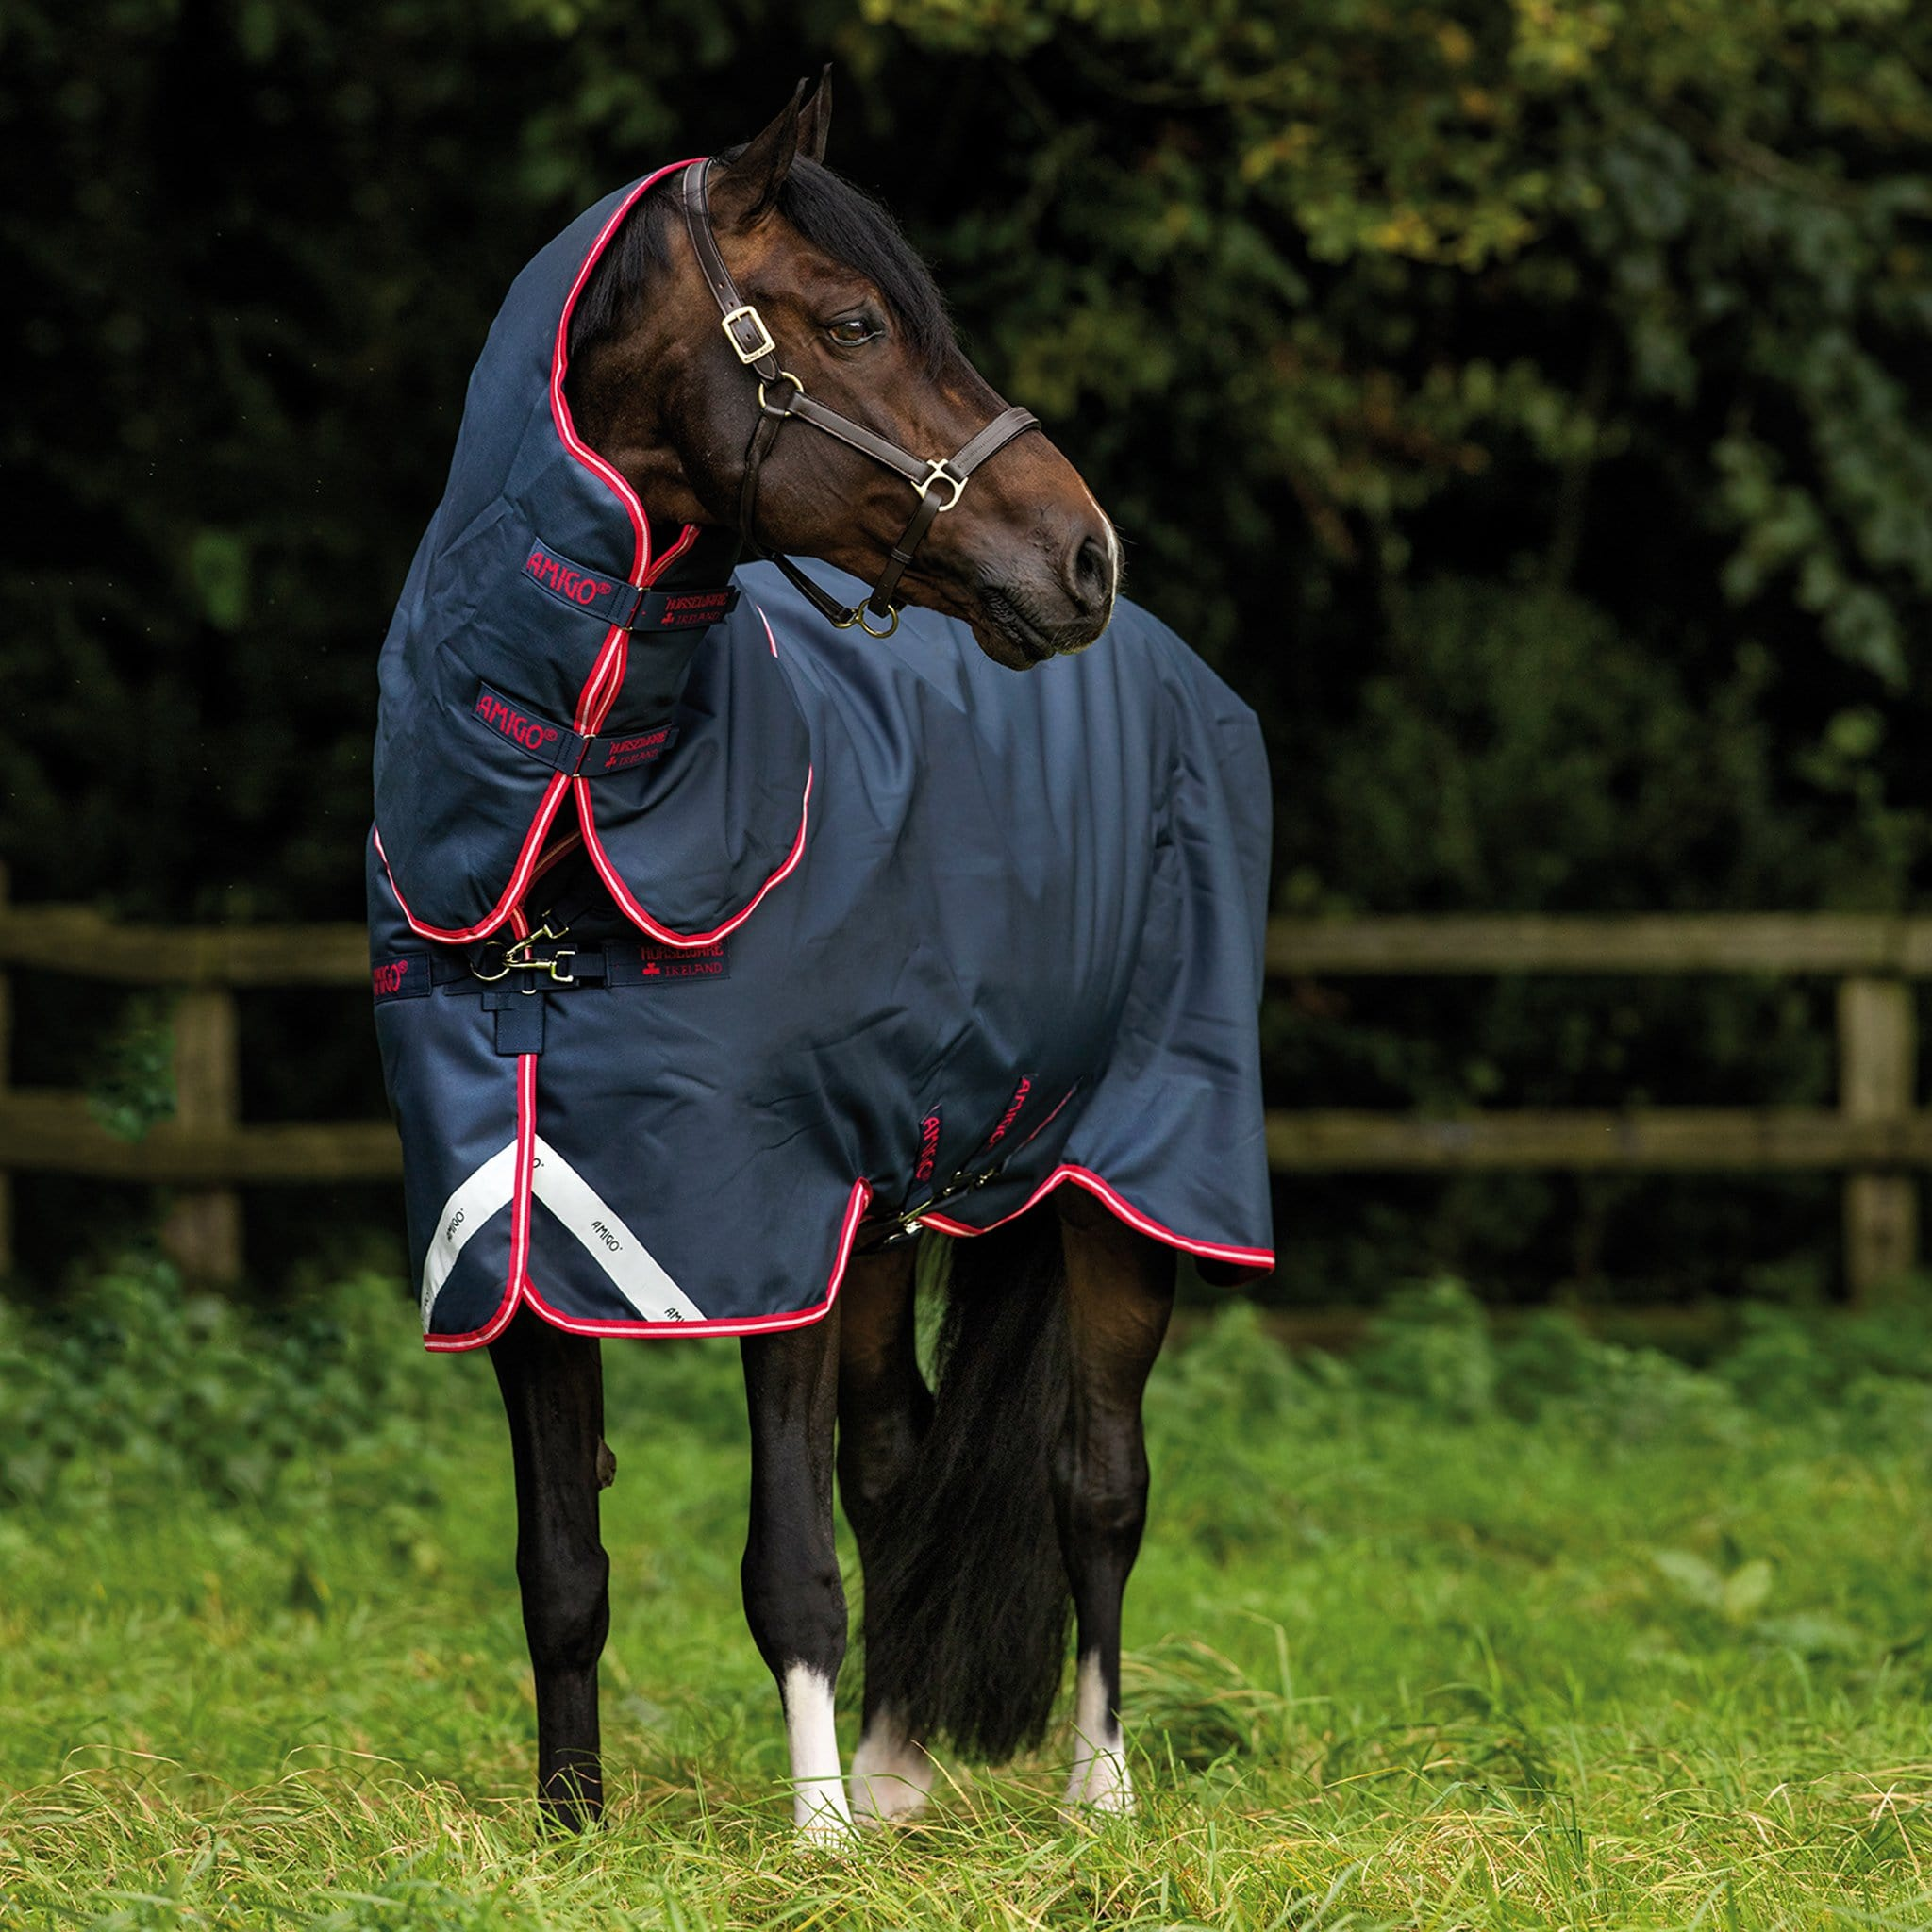 Amigo Bravo 12 Plus Mediumweight 250g Detachable Neck Turnout Rug Navy Front View AARP72